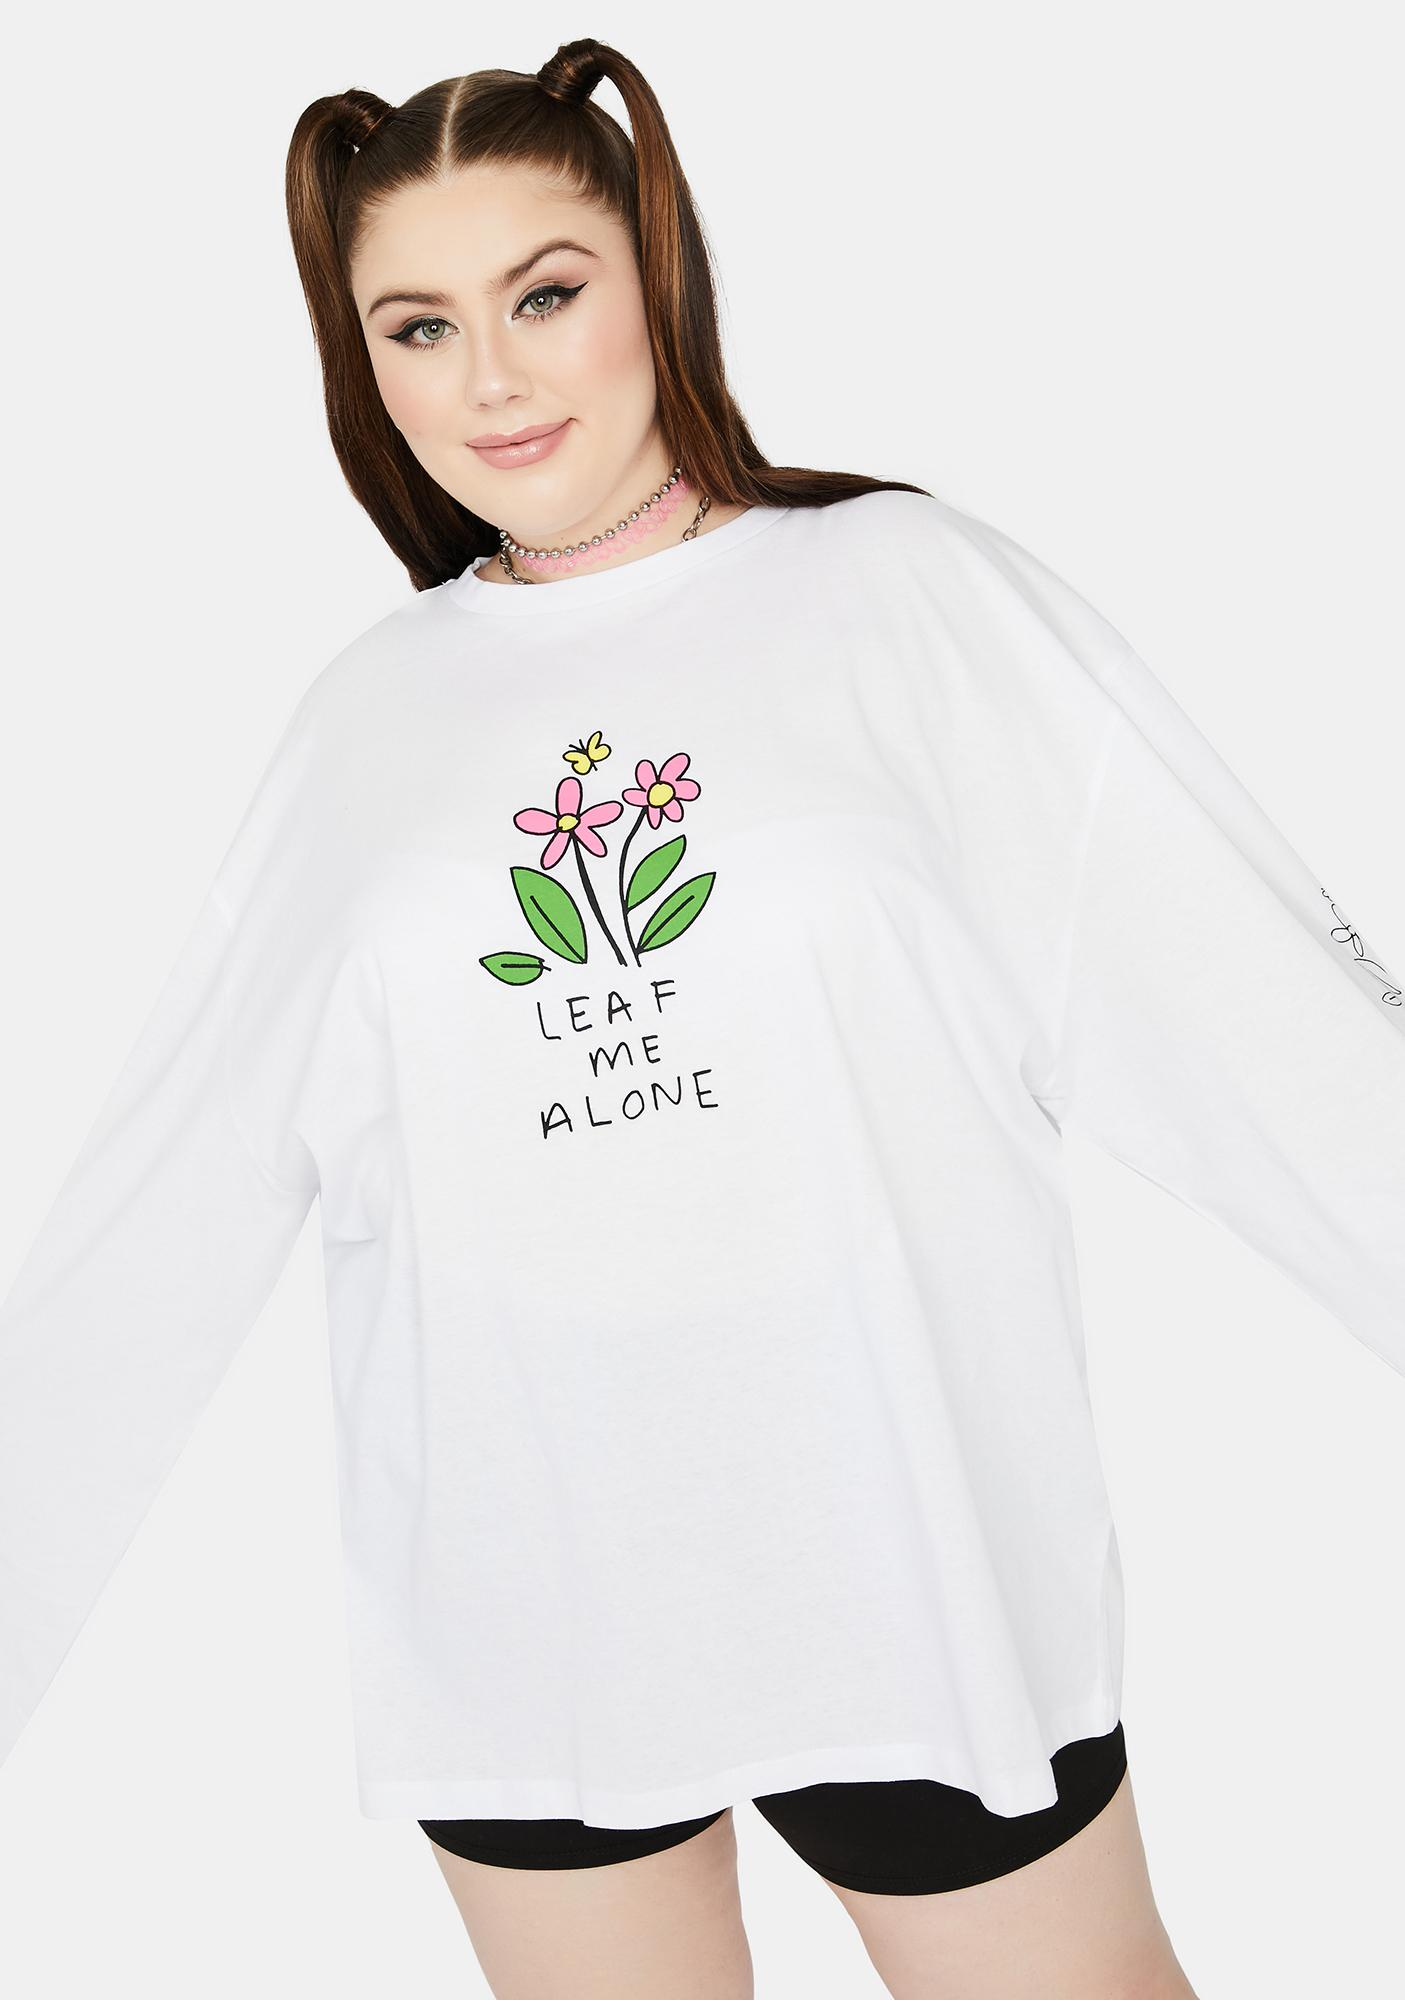 NEW GIRL ORDER Curve White Leaf Me Alone Graphic Tee